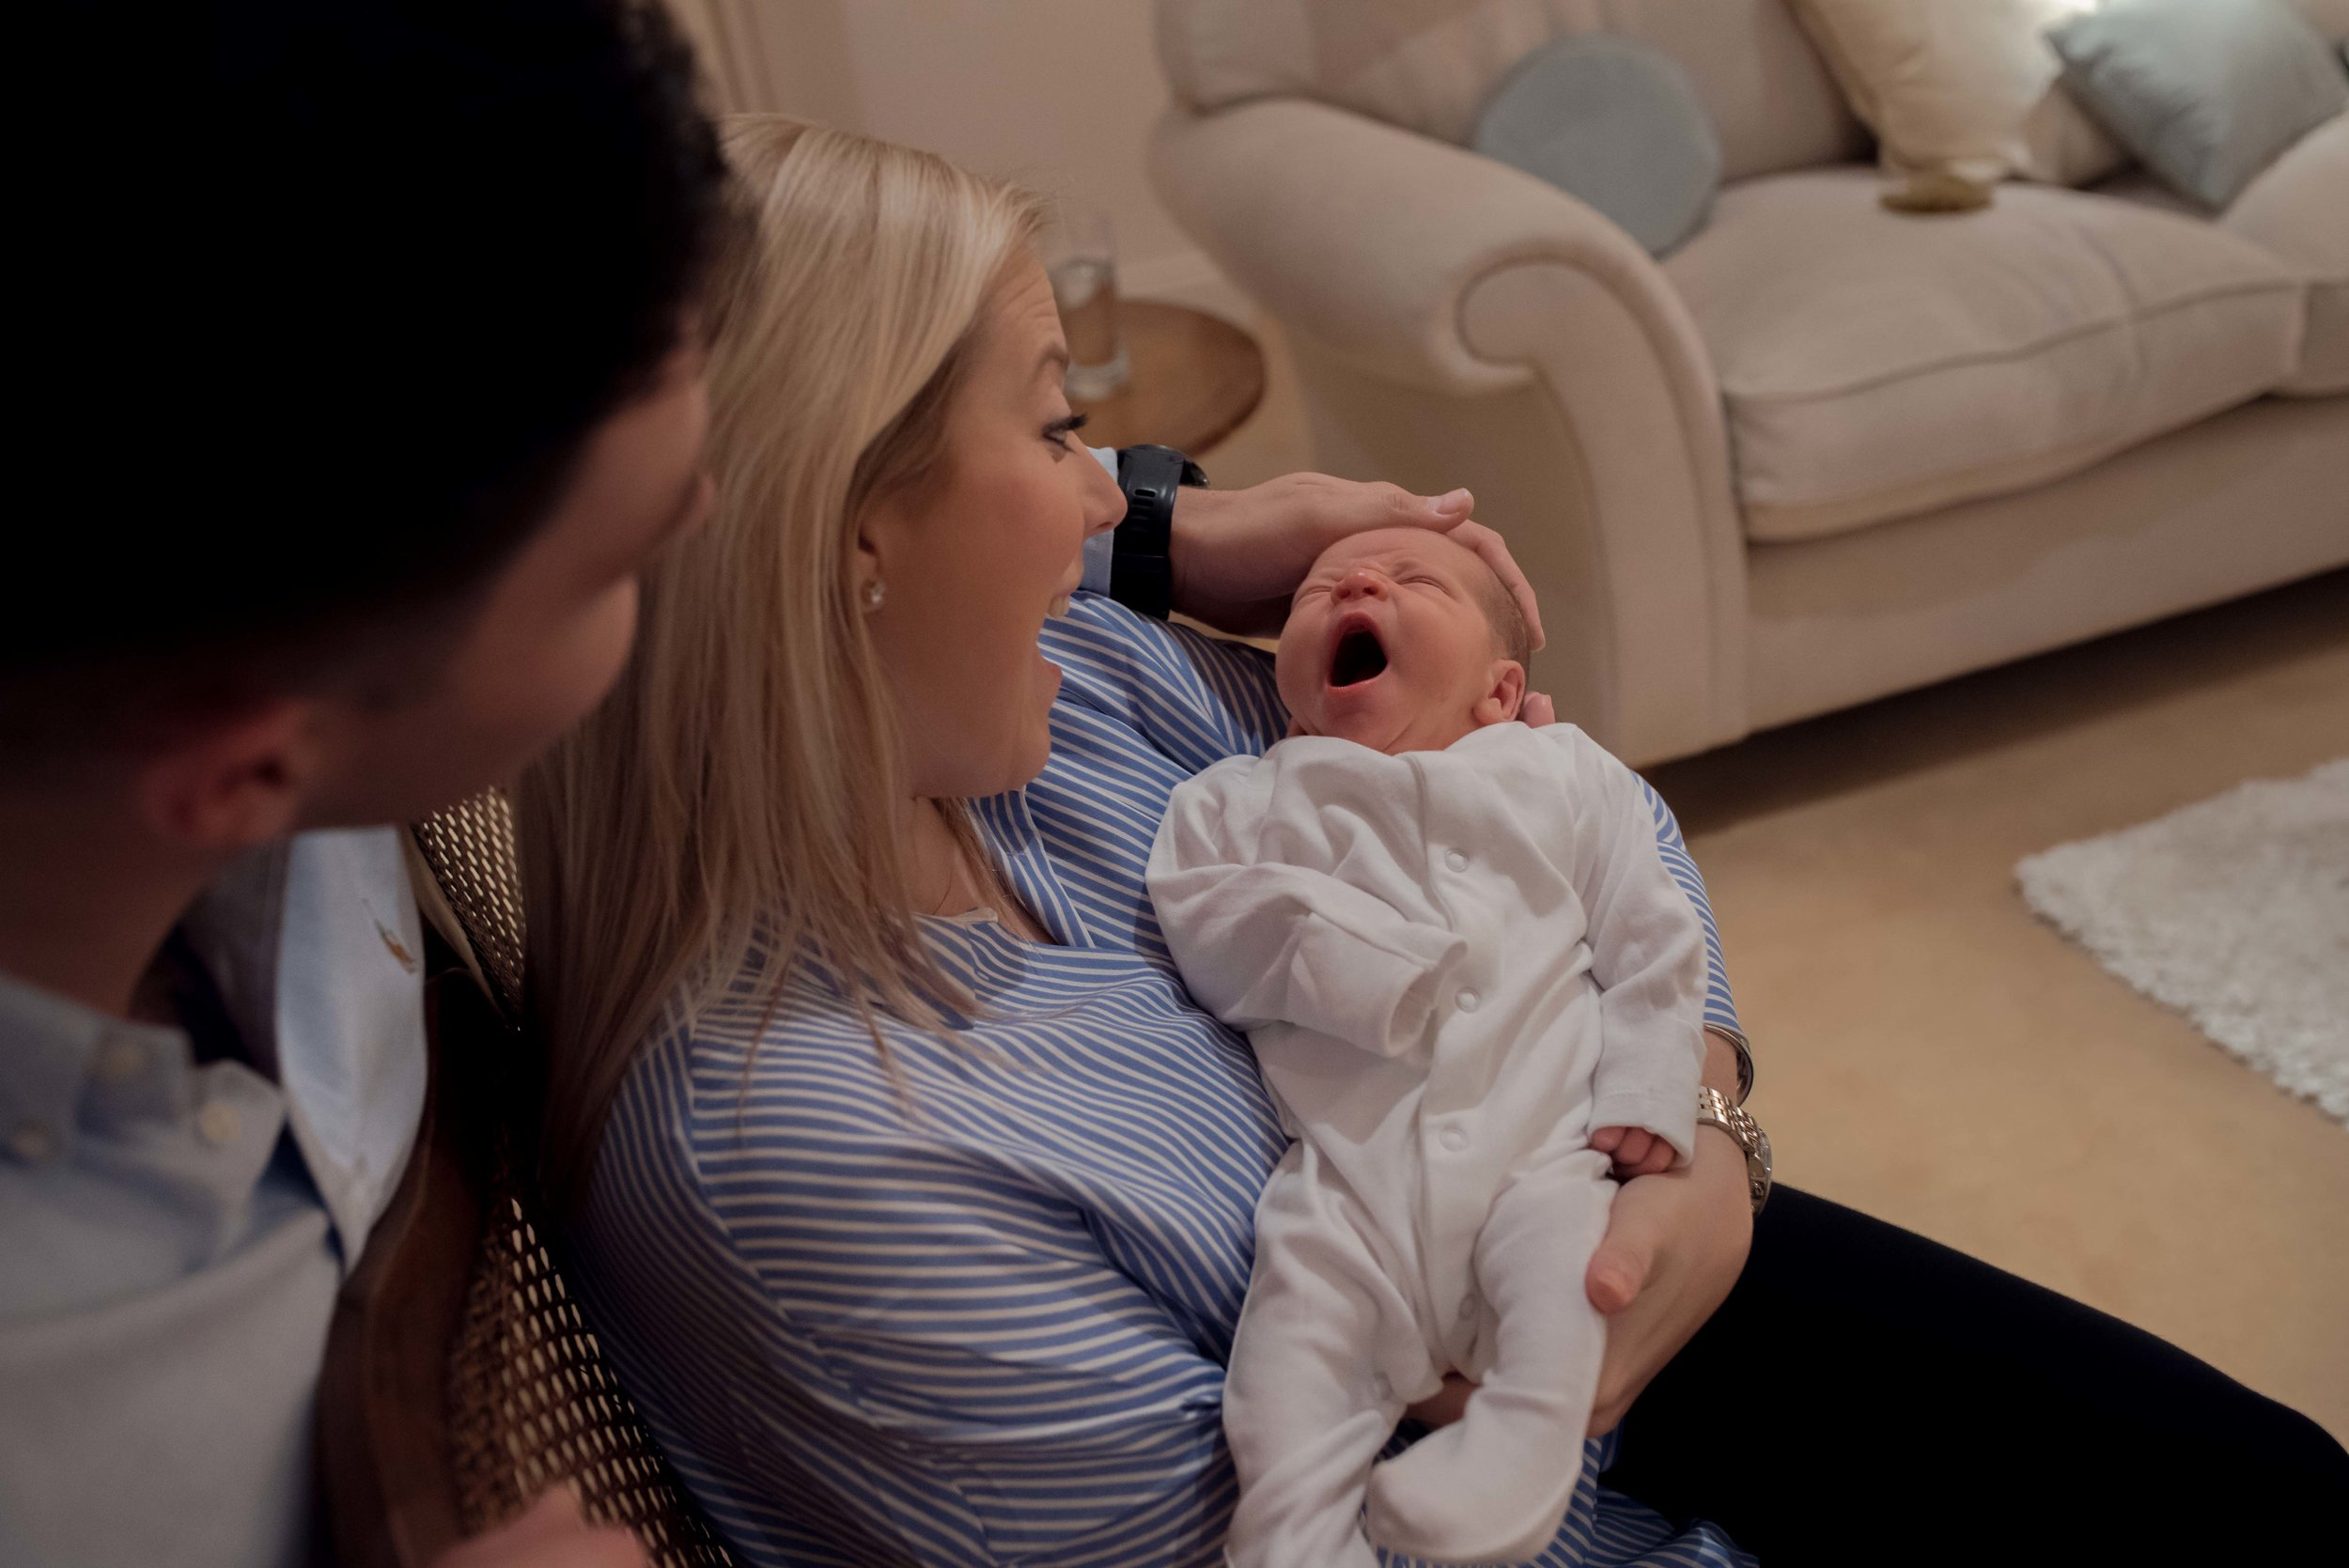 Newborn baby Harry yawn as his mum and dad look lovingly at him.